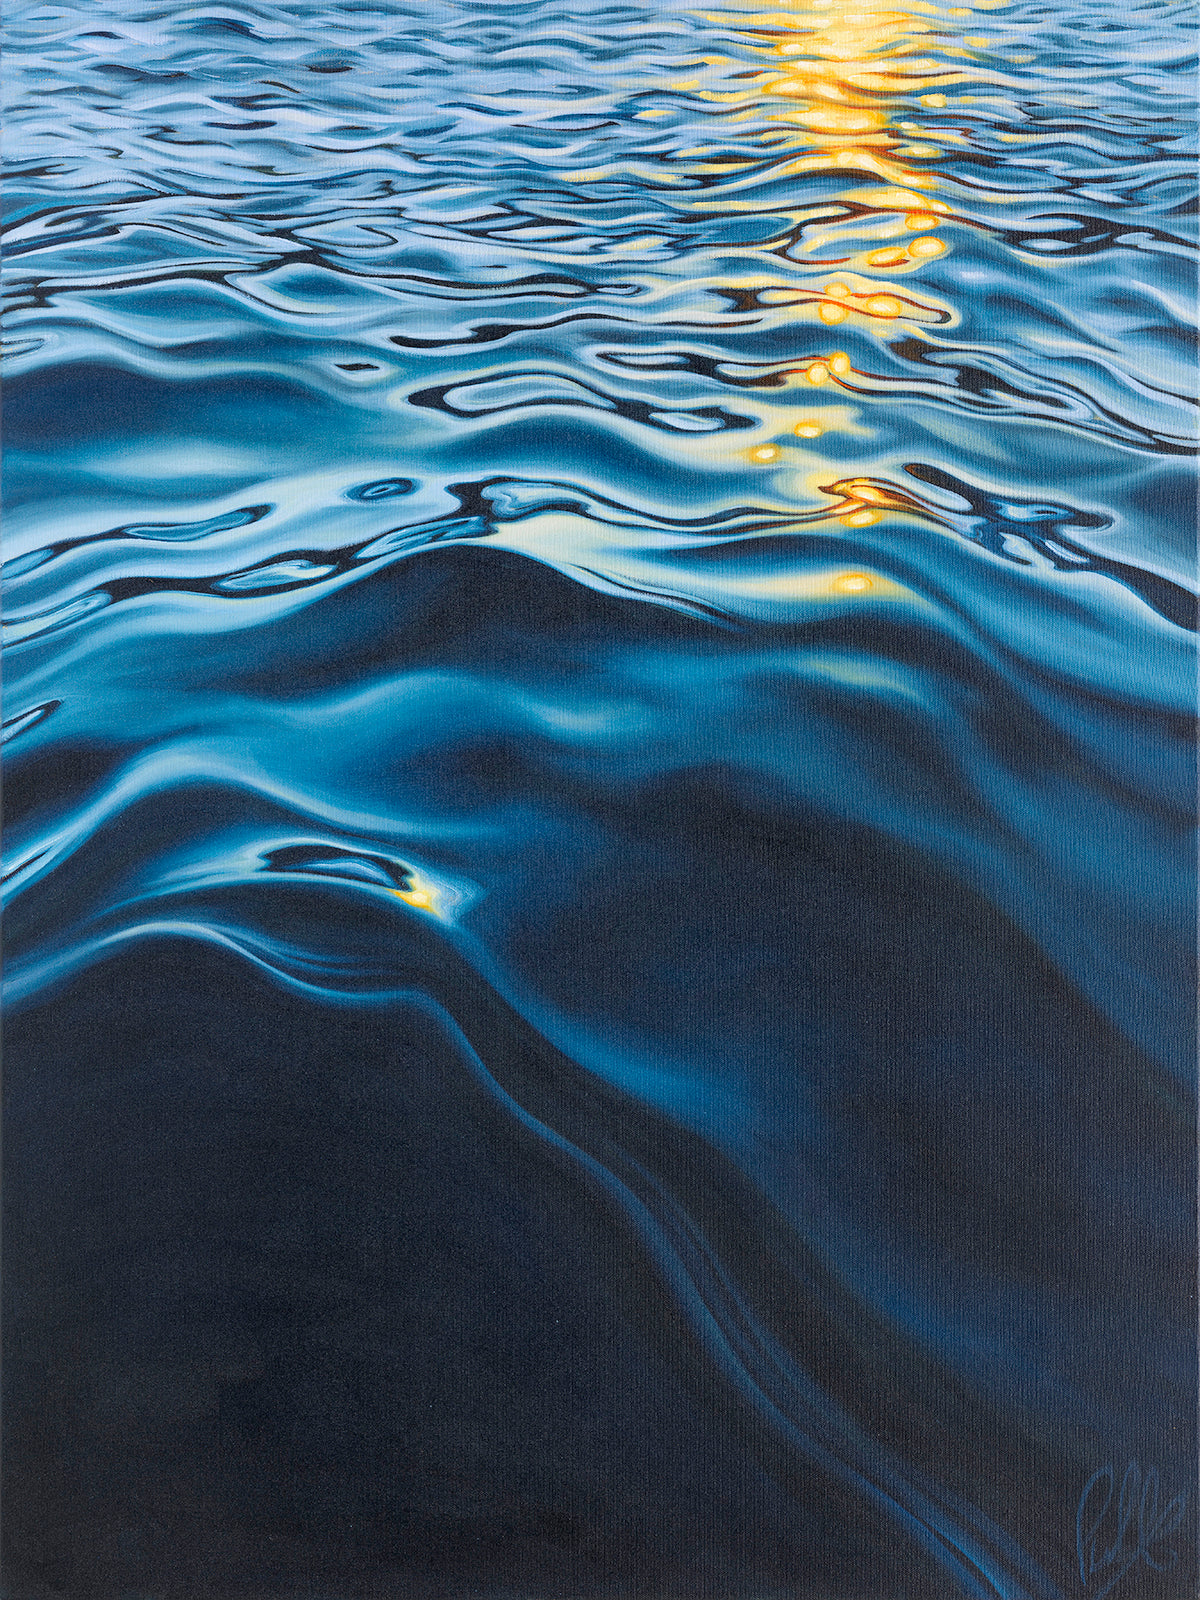 Sunlight Dancing on the Water